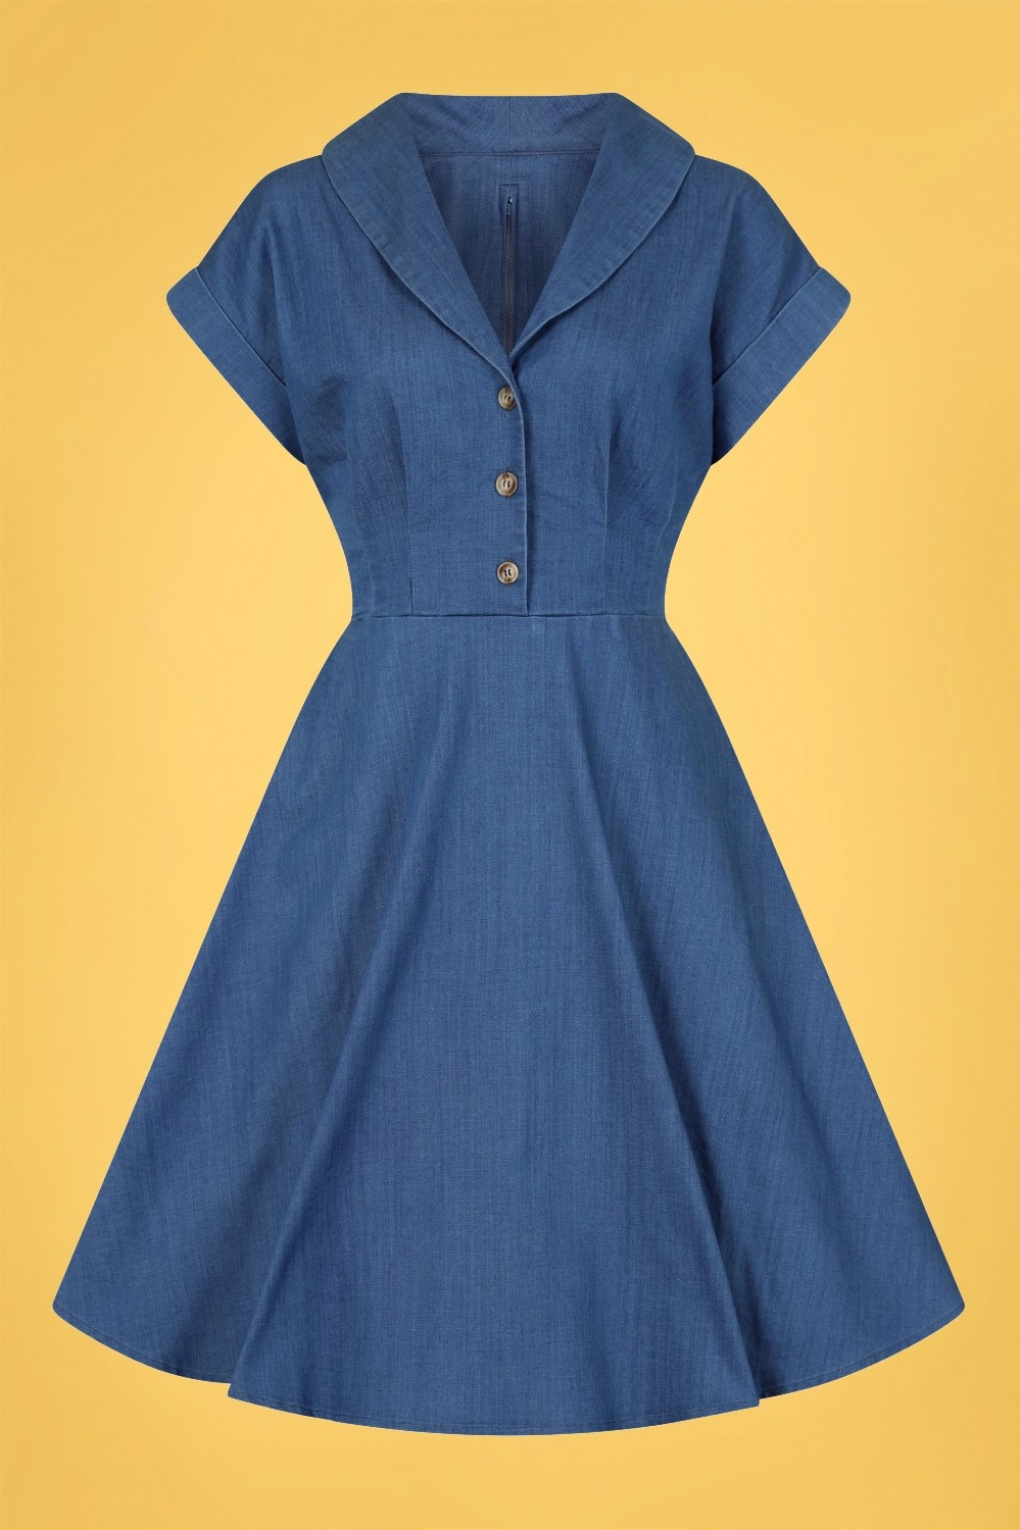 1950s Plus Size Dresses, Swing Dresses 50s Freddie Swing Dress in Denim Blue £60.01 AT vintagedancer.com